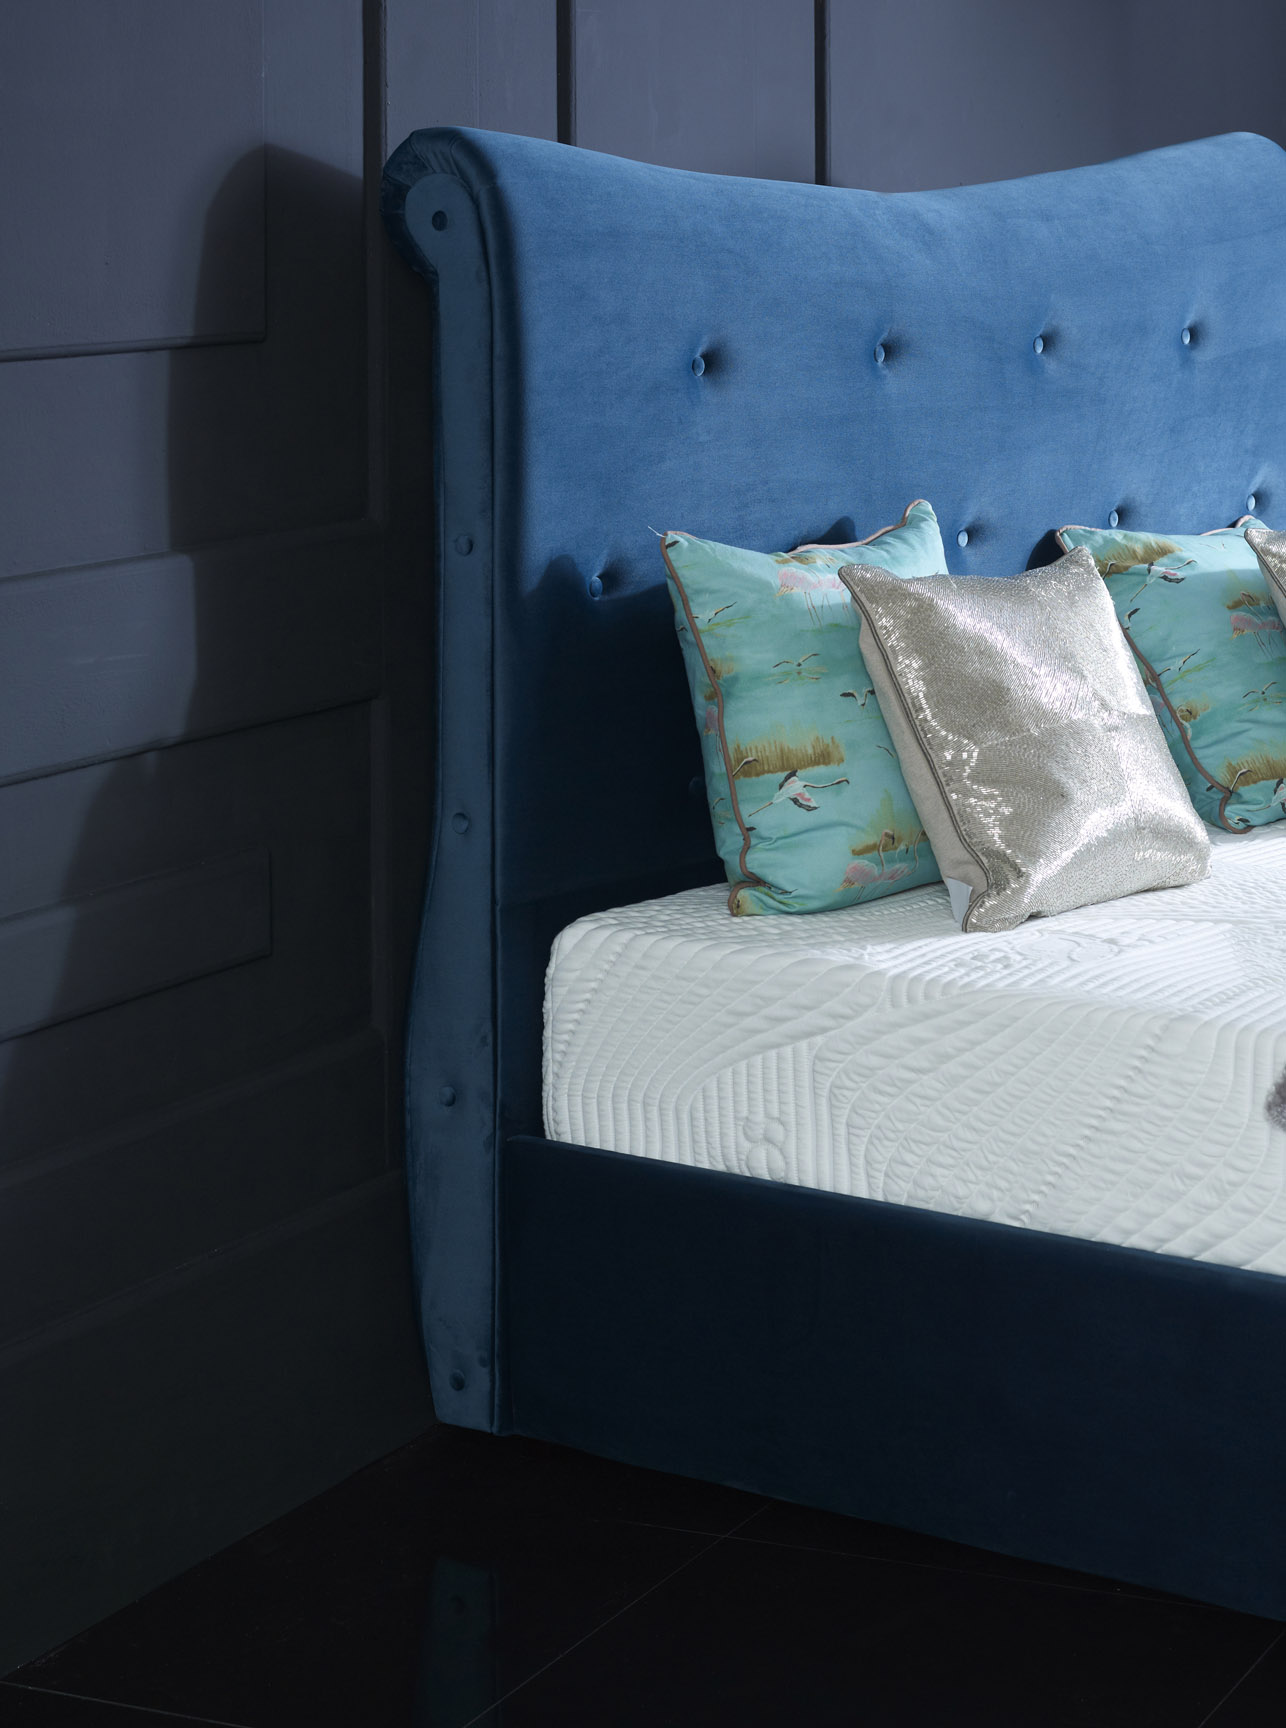 Upholstered Bed Frames - Our Bed Collection offers a wide-range of designs that combine tradition, with an innovative twist, to help bring grandeur to your home. Redefining luxury with our clean, contemporary designs to complement your interior and bring dreams to reality.